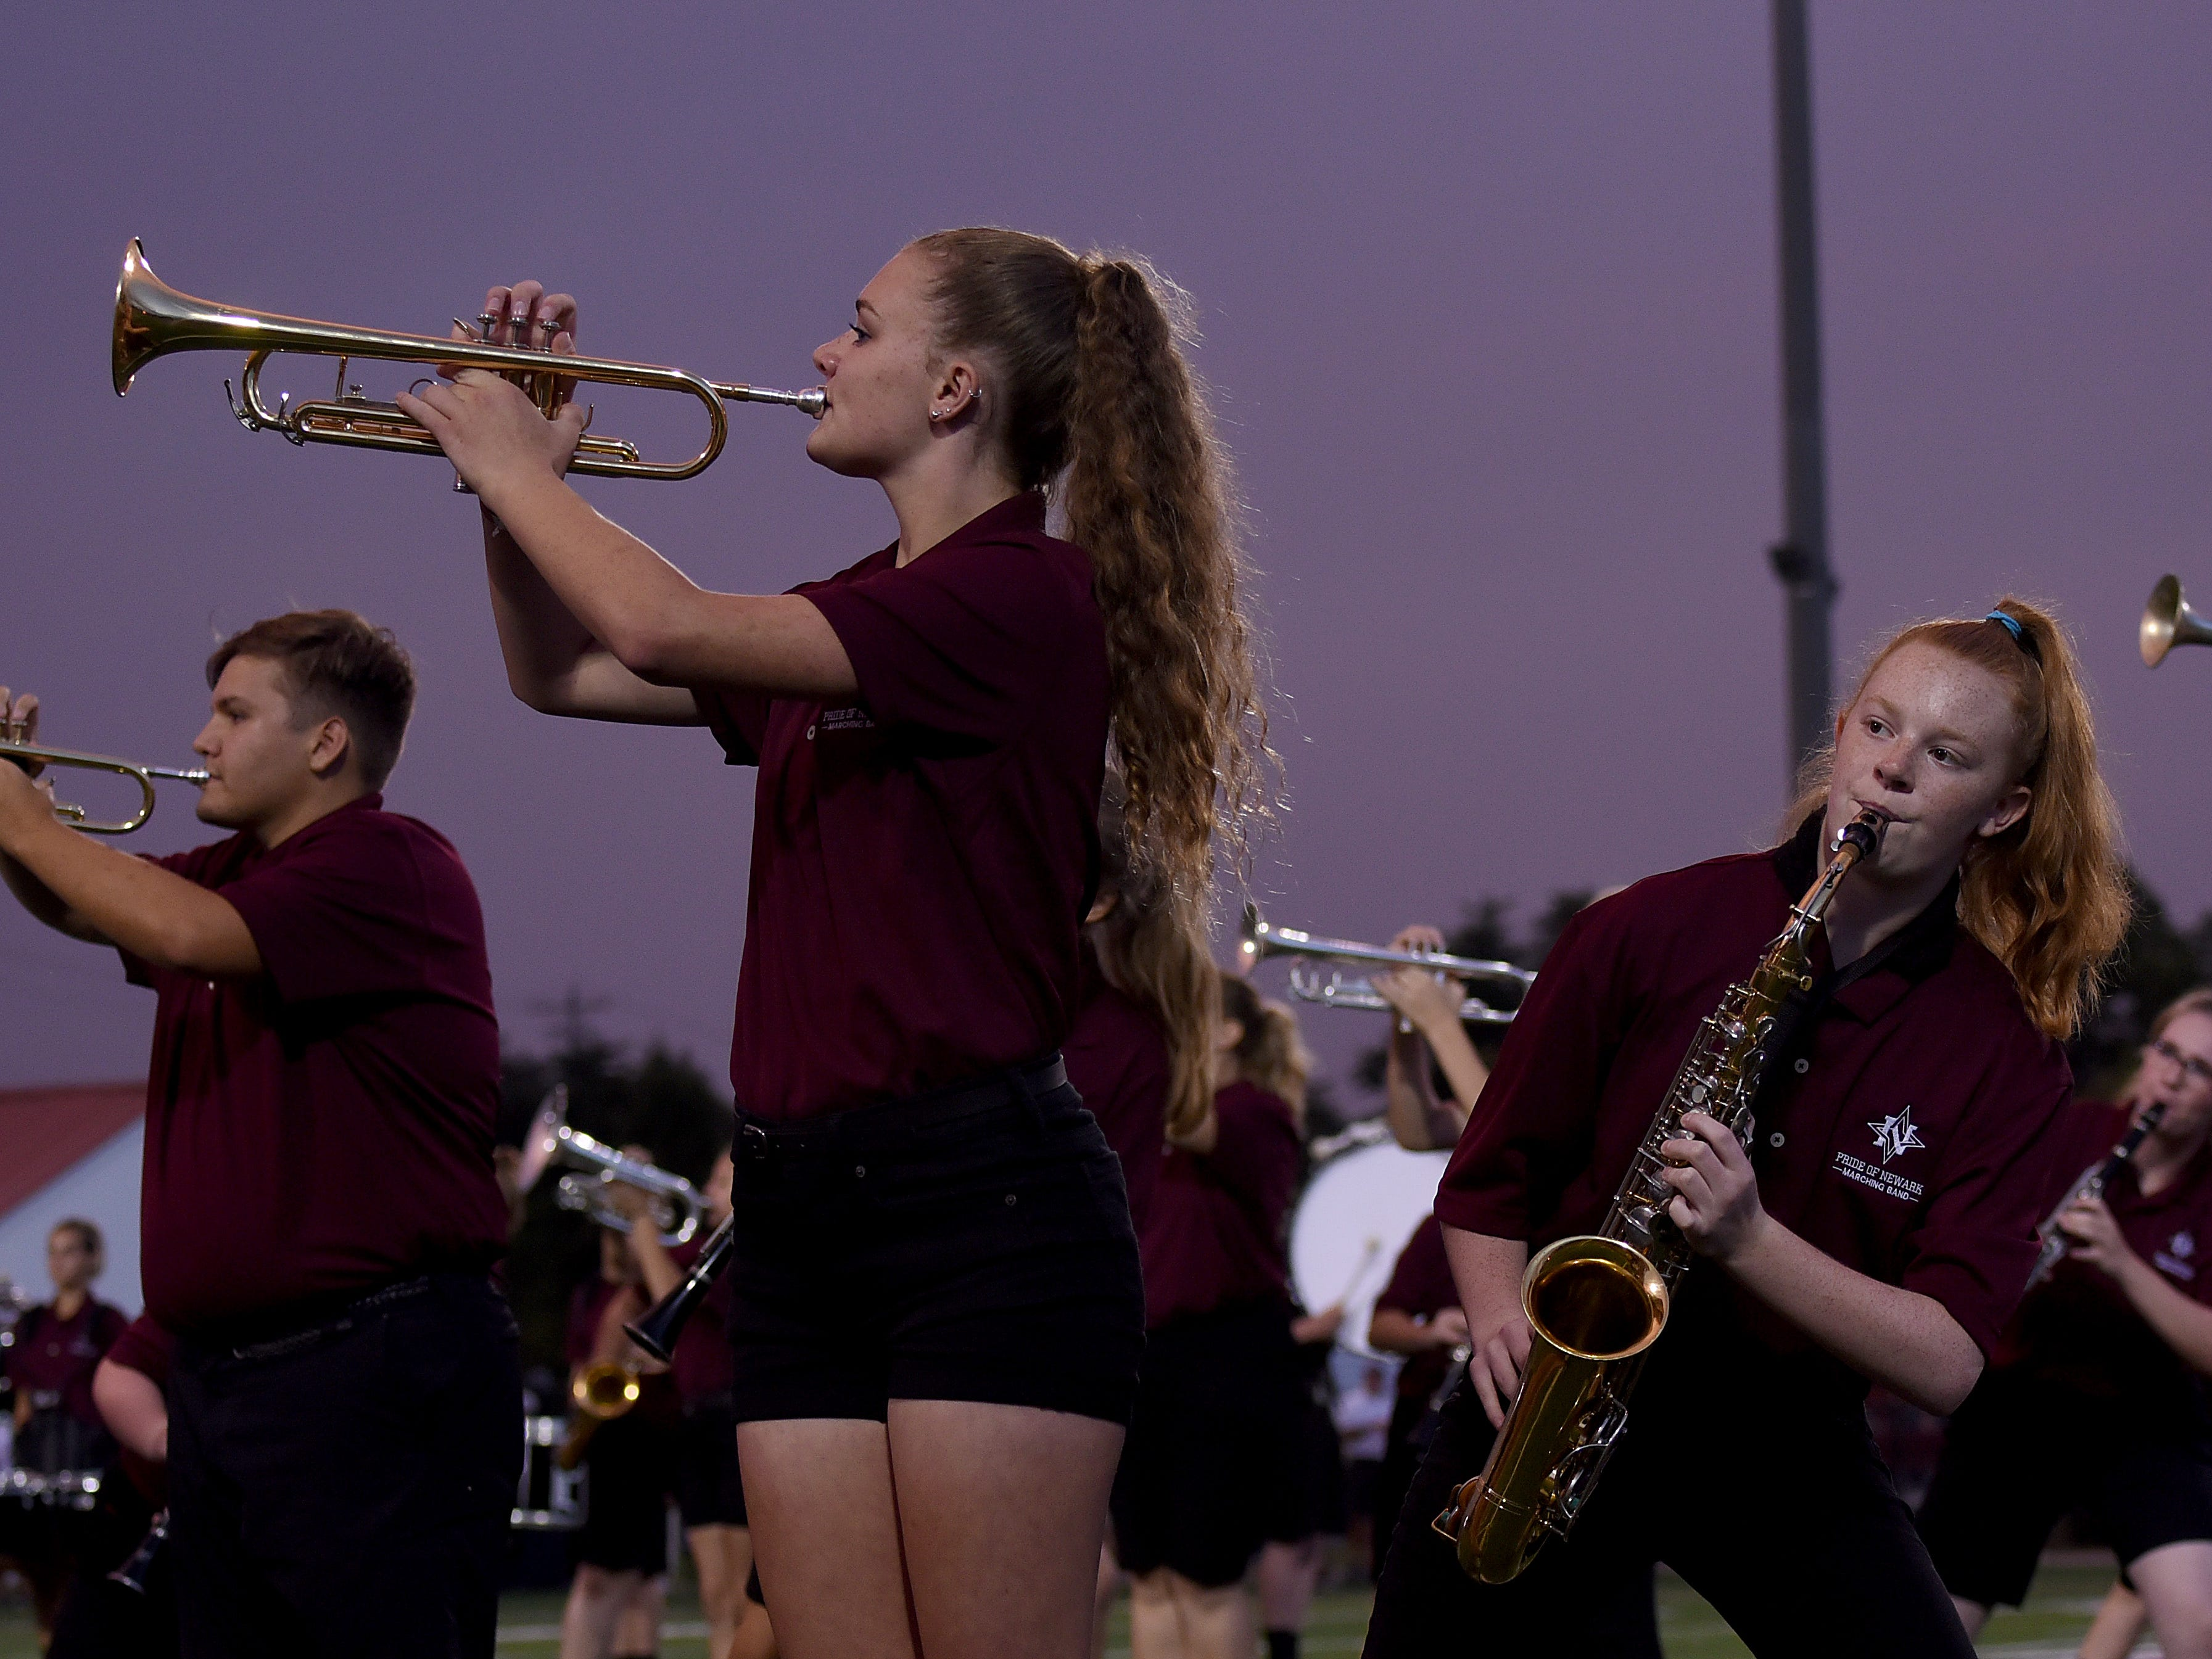 Newark High School's Trinity Harmon and Michey Orth perform with the marching band during halftime on Friday, Aug. 24, 2018.